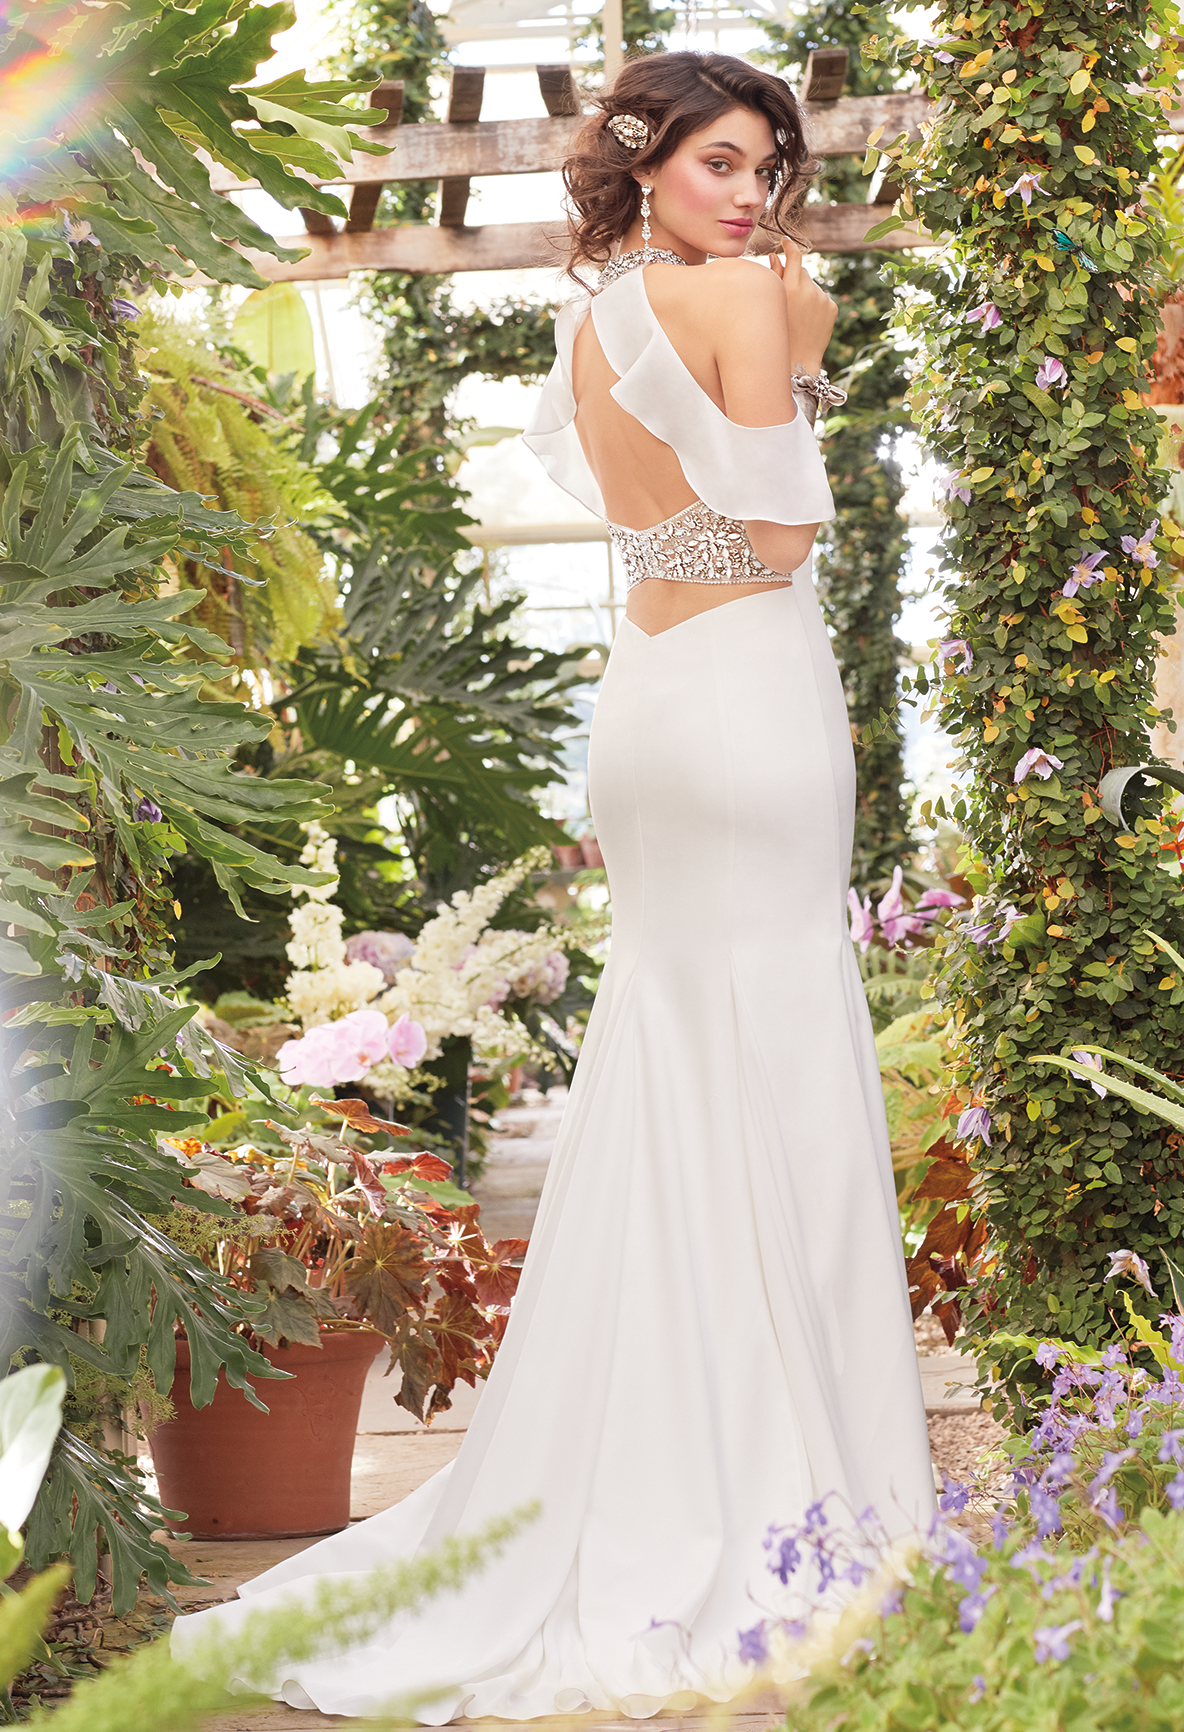 Tie the knot in this unique wedding dress! The